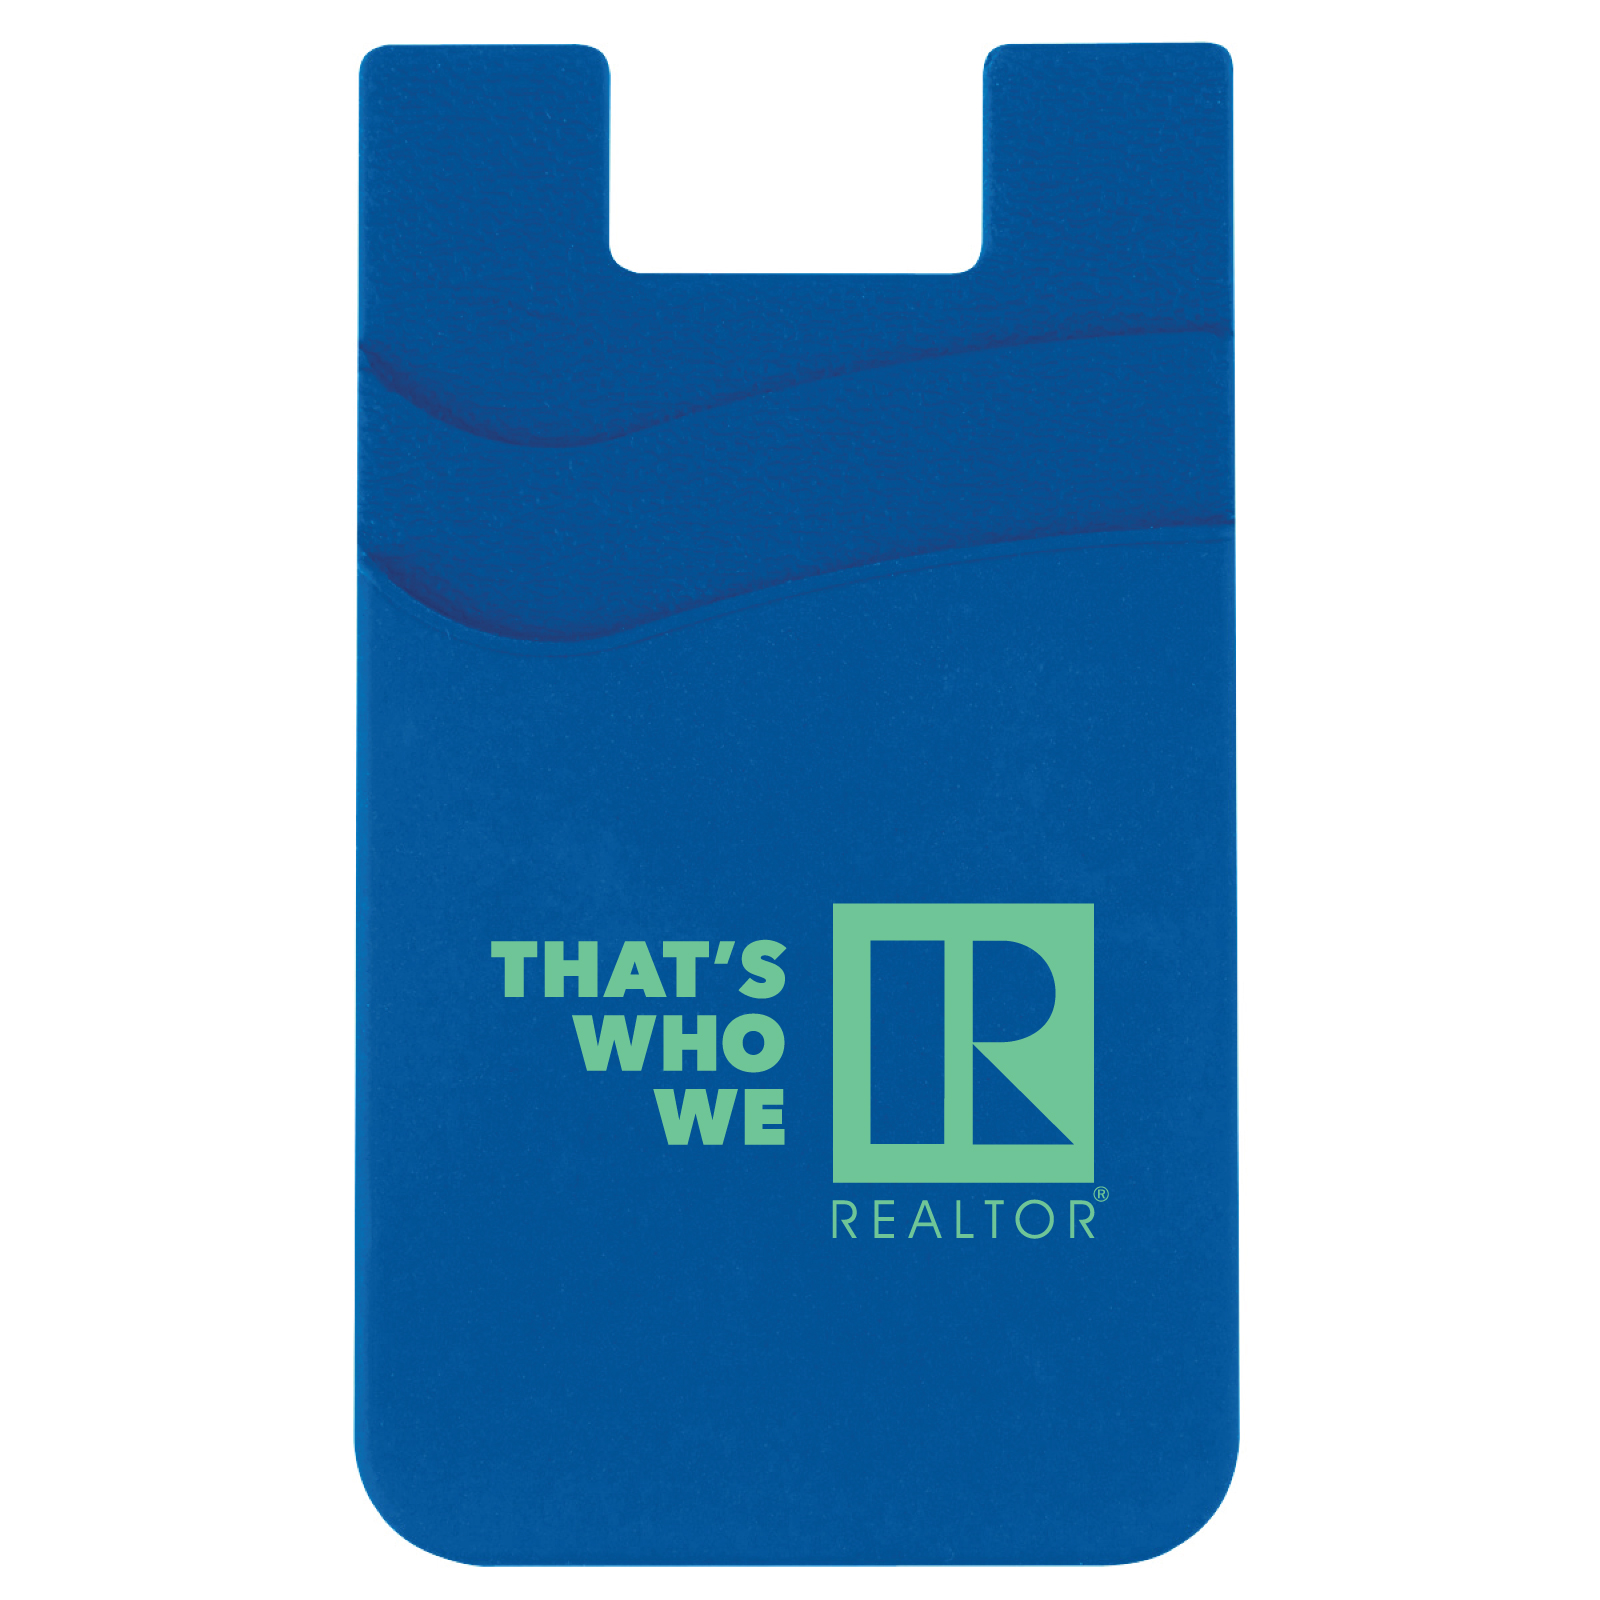 """Thats Who We R"" Cell Phone Card Wallet Cards,Wallets,Holders,Cells,Phones,Techs,Business,Credits,iPhones"